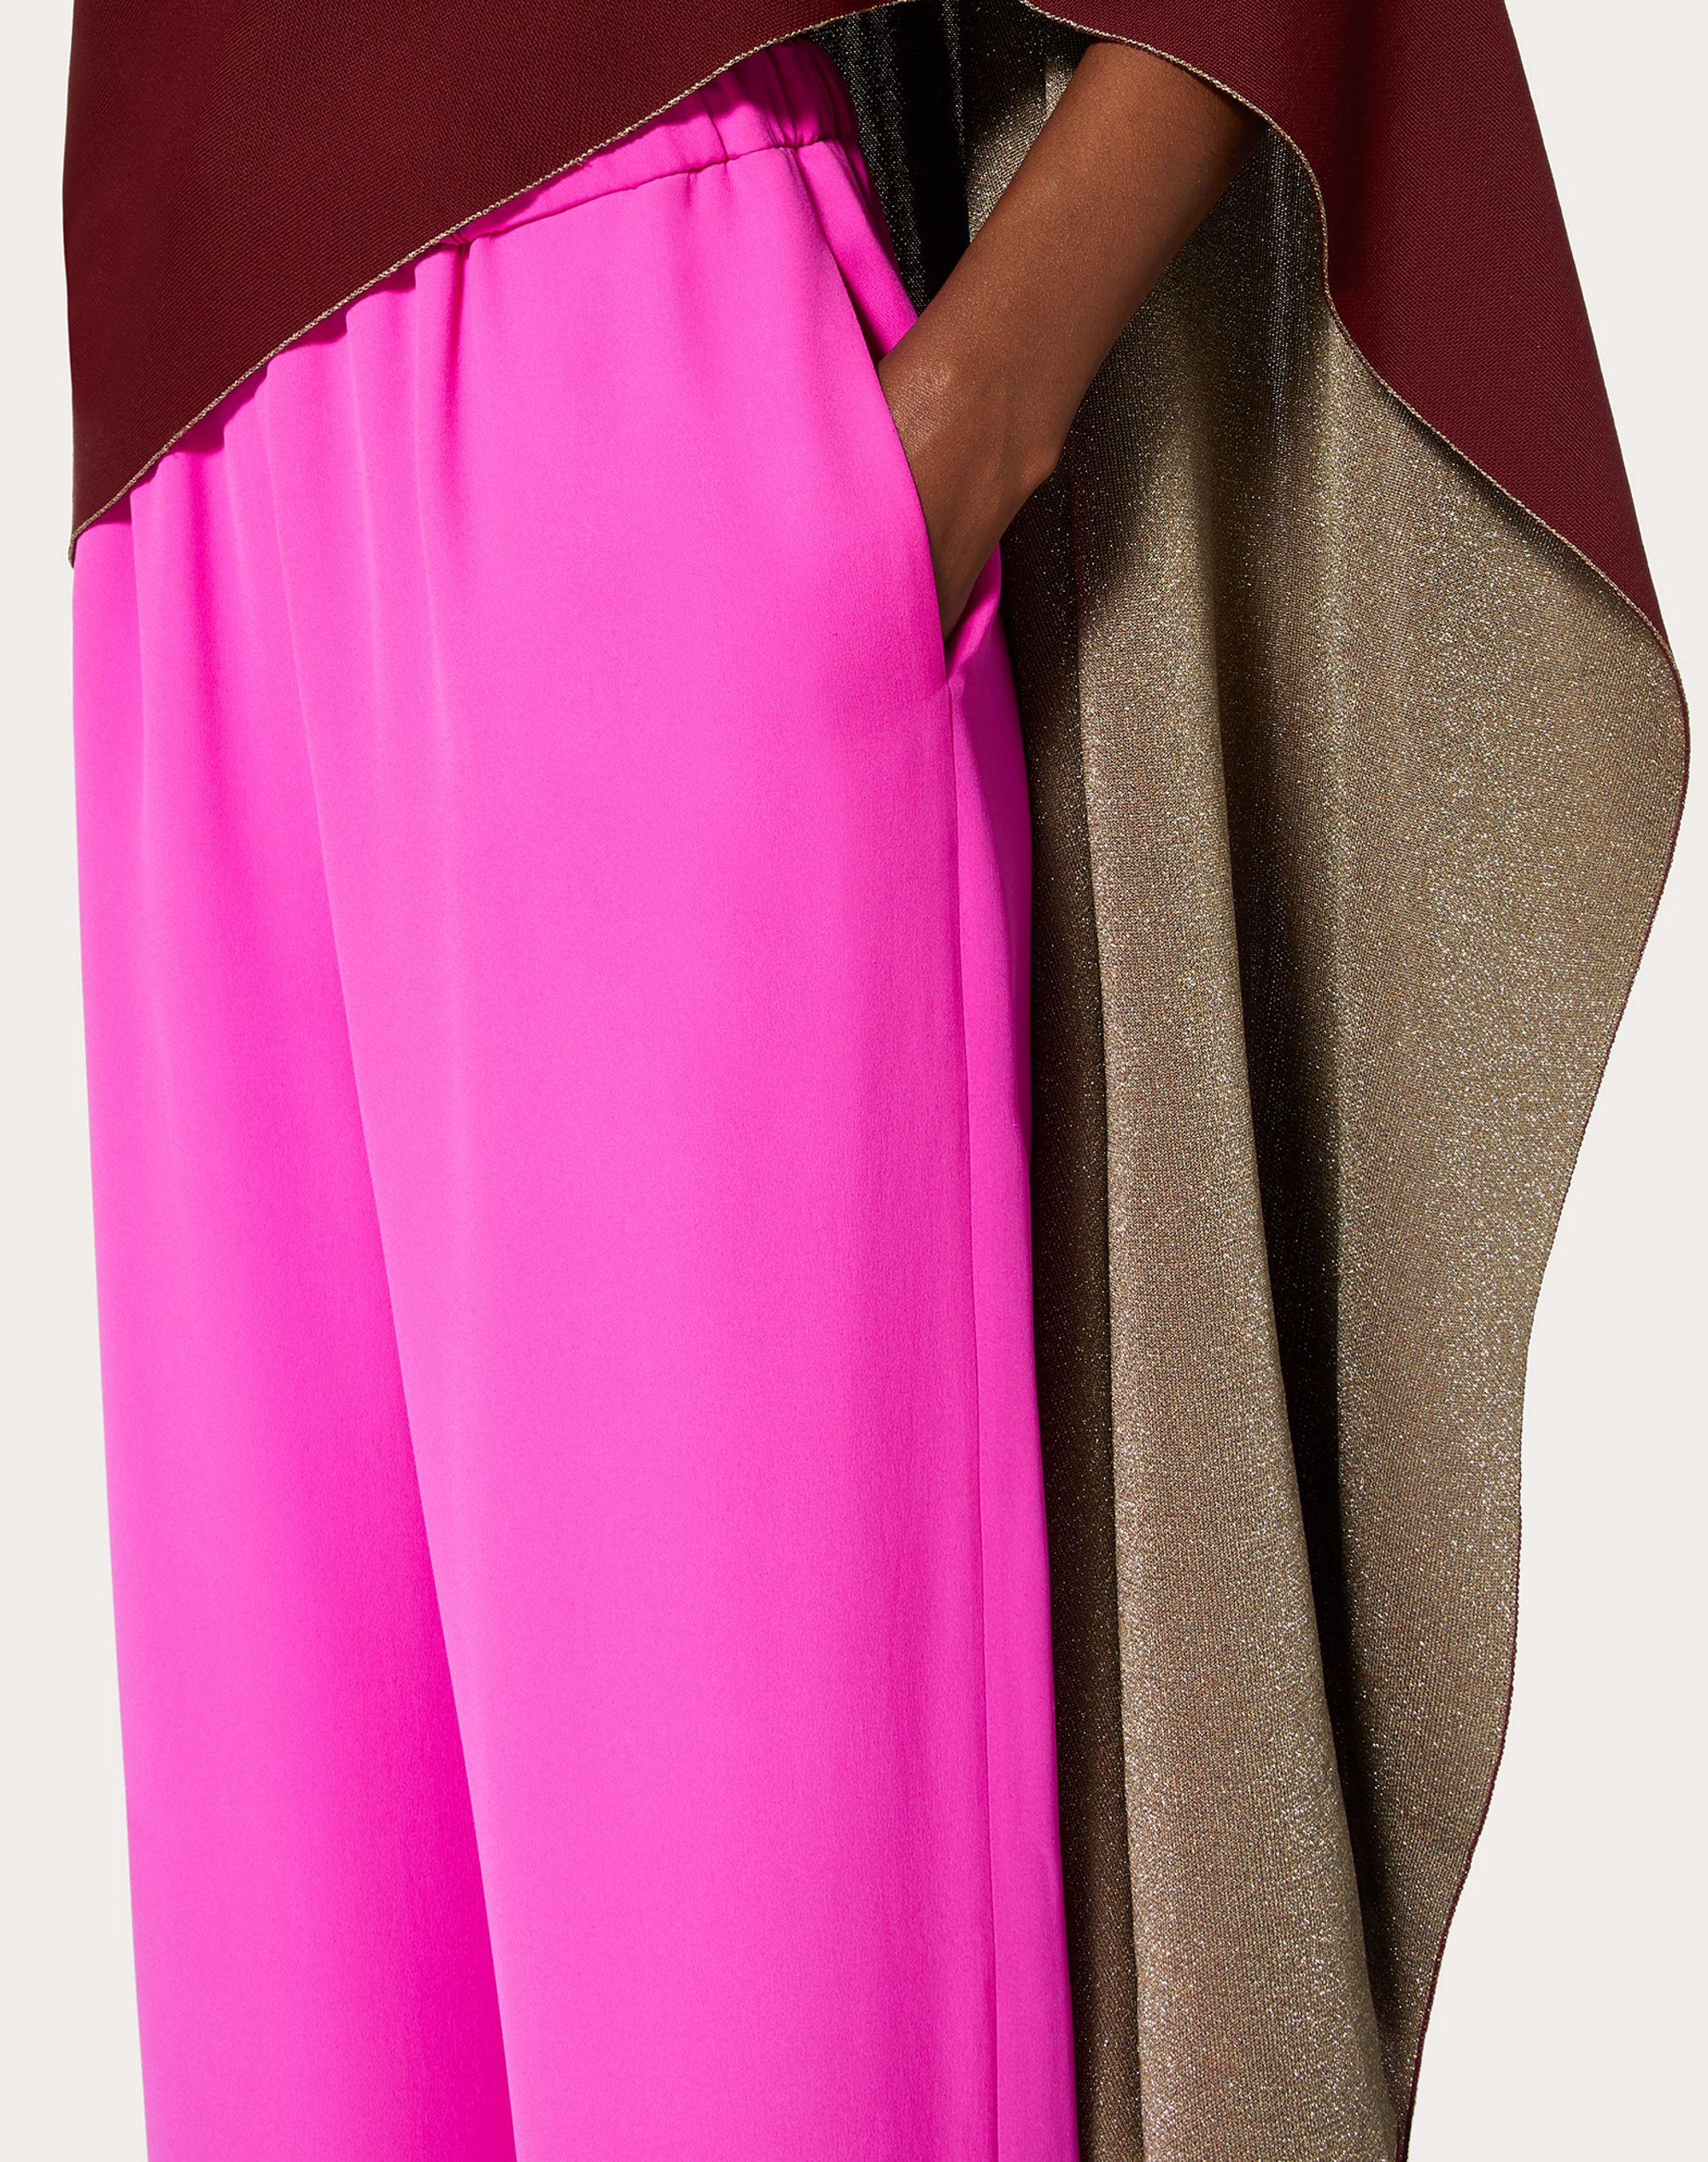 CADY COUTURE PANTS 4